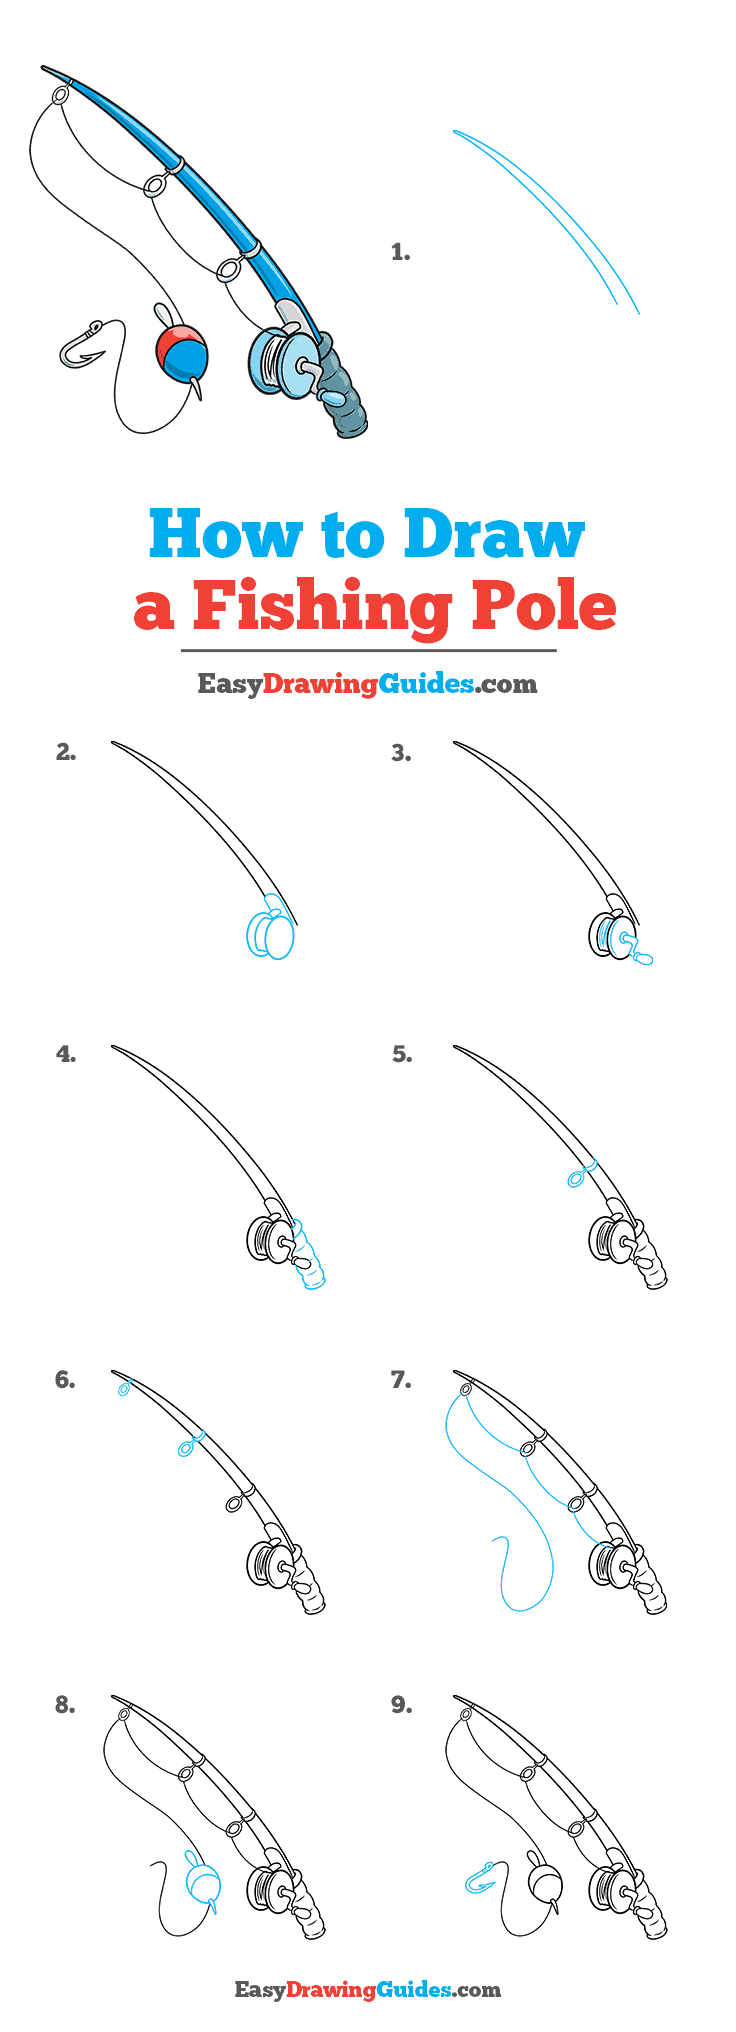 How to Draw a Fishing Pole Step by Step Tutorial Image